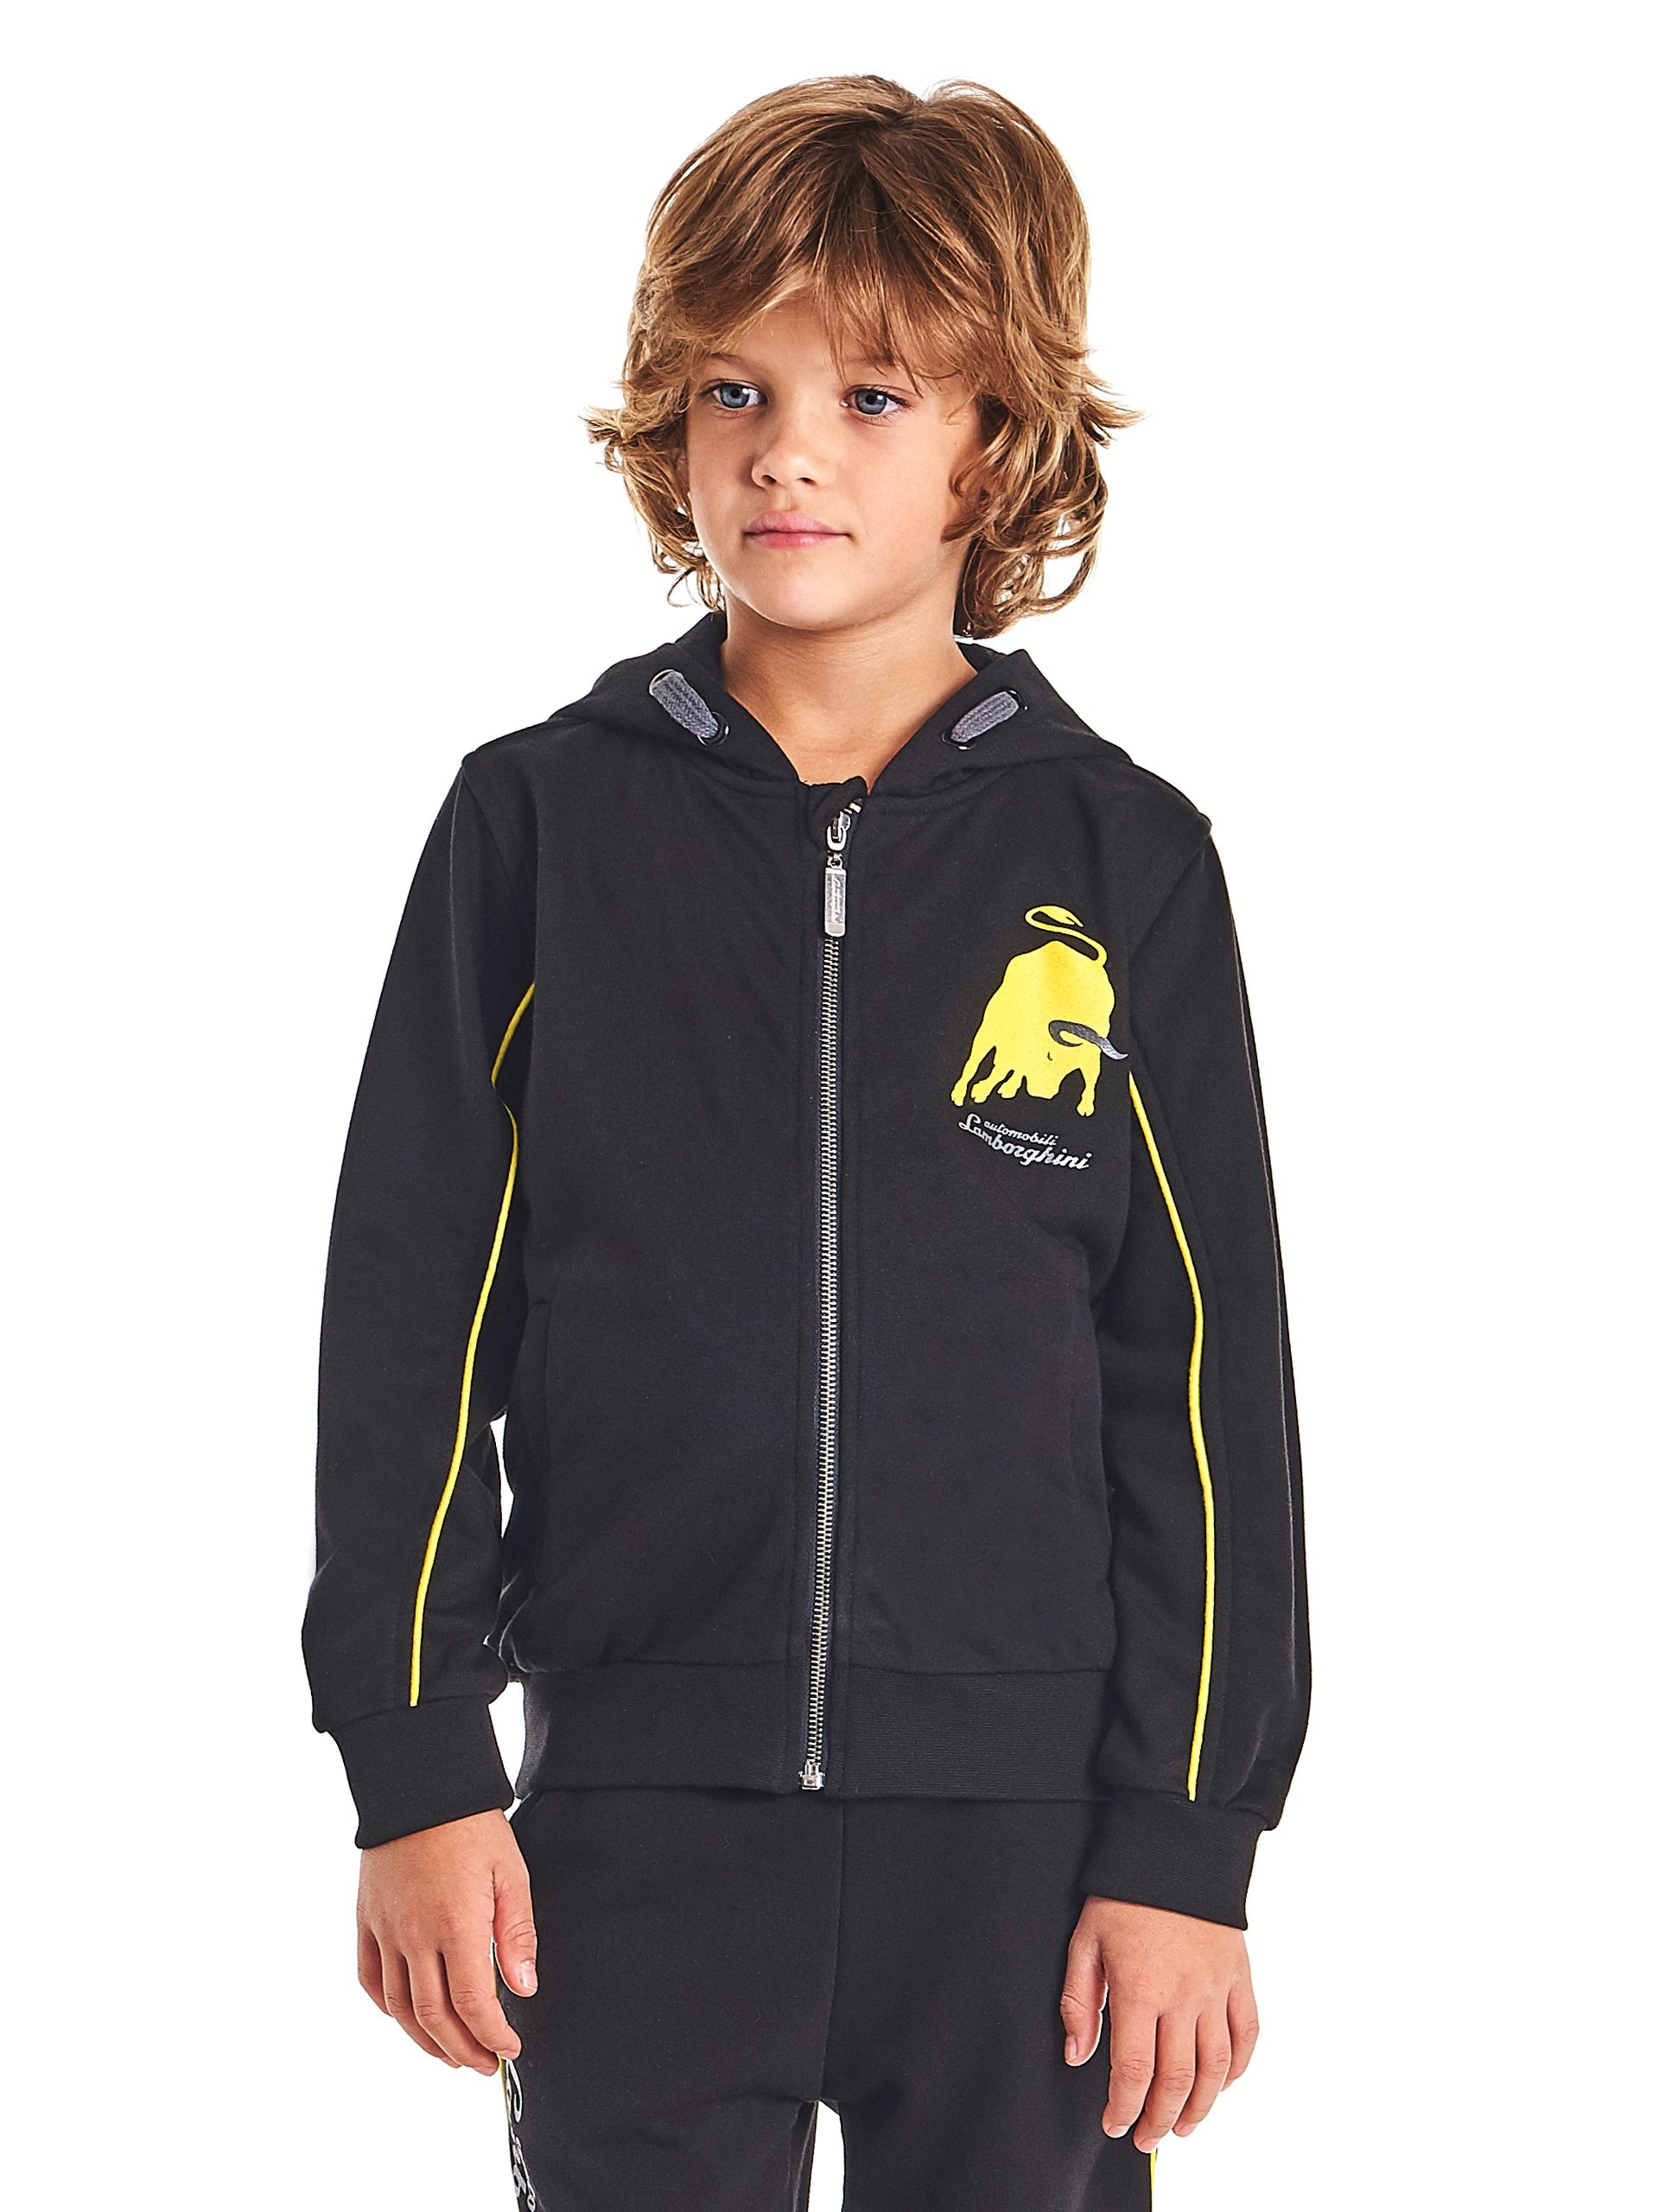 Automobili Lamborghini Children Lamborghini Big-bull Hooded Sweatshirt For Kids 8 Years Black by Automobili Lamborghini